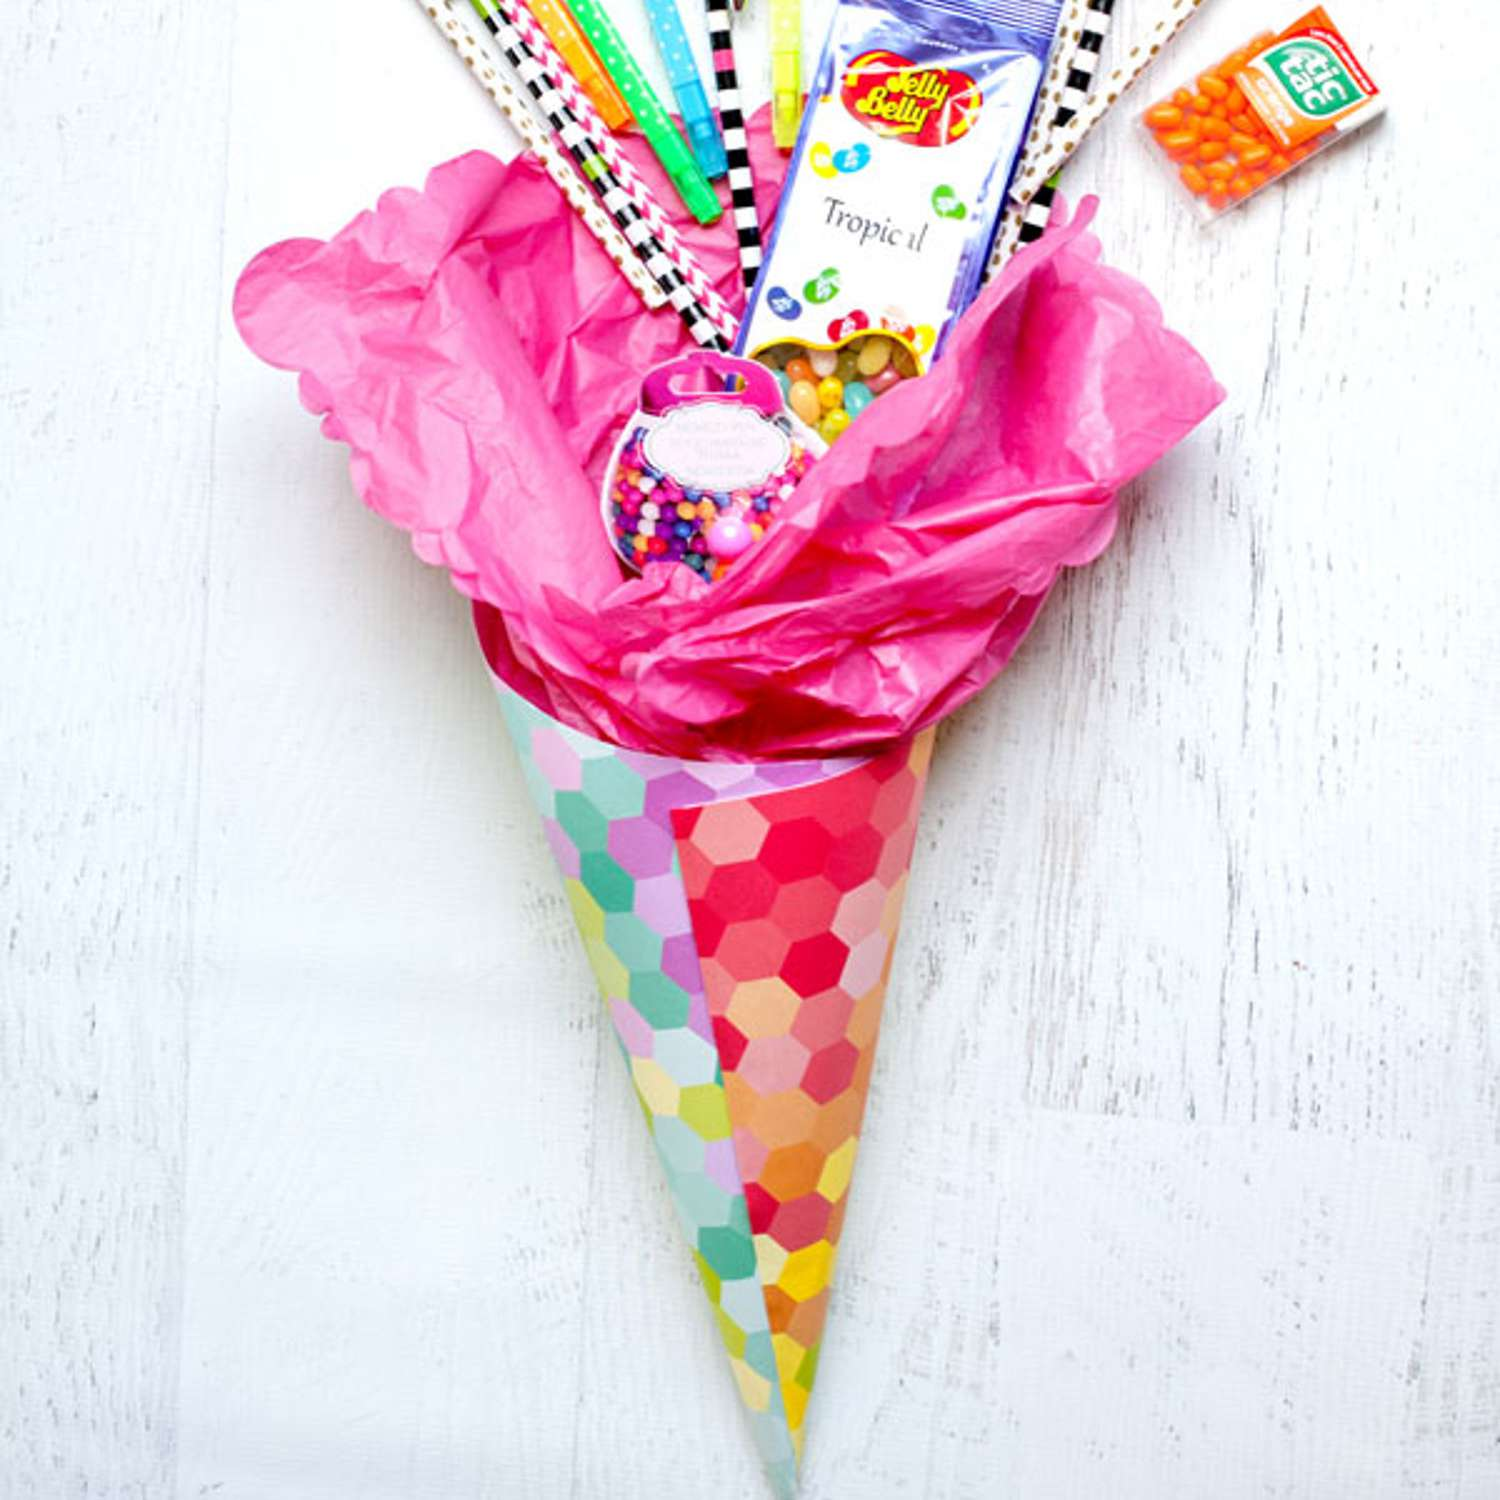 8 Cute and Colorful Back-to-School Crafts